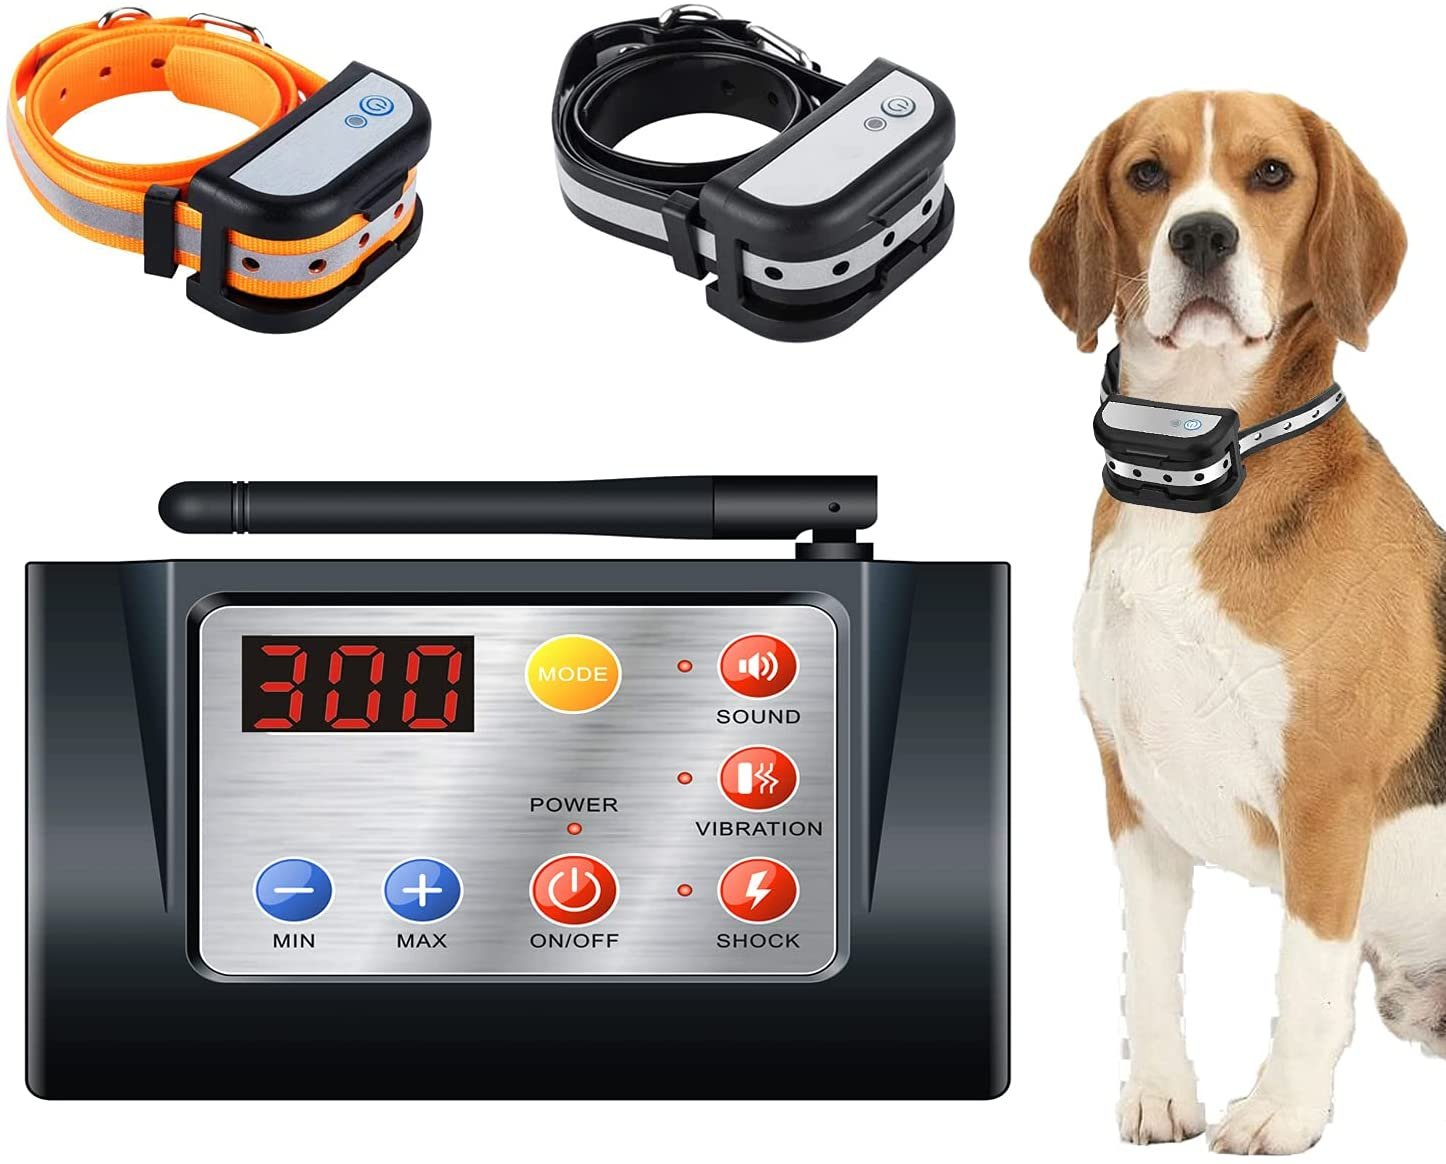 Wireless Dog Fence System, 2 in 1 Wireless Dog Fence with Training Collars